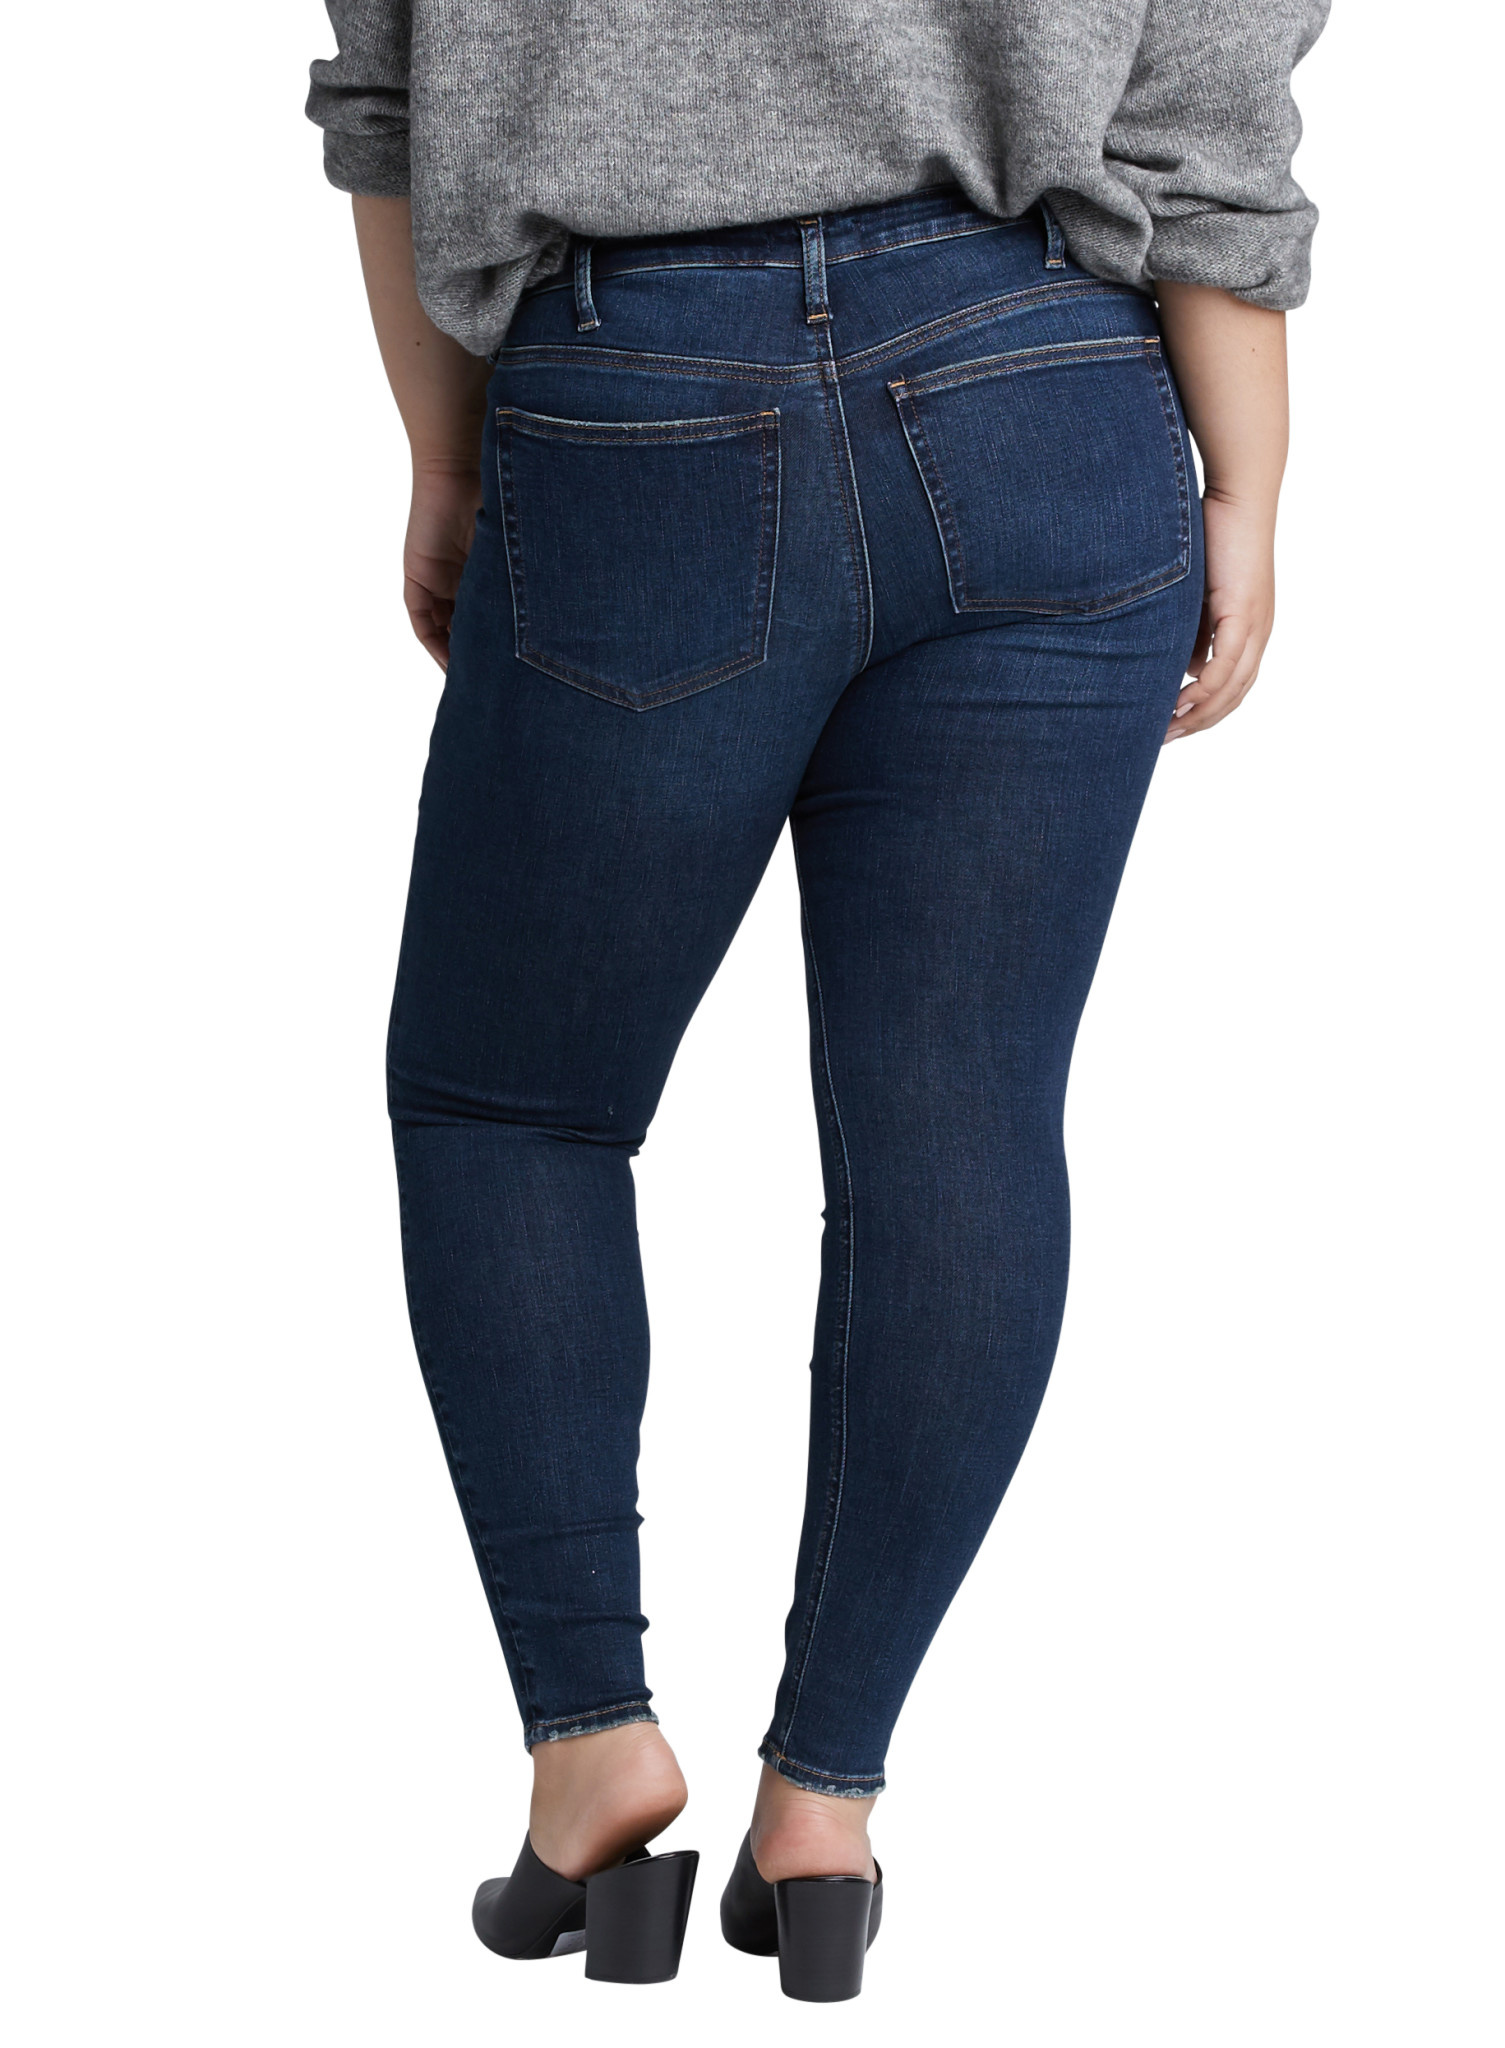 Silver Jeans Most Wanted Skinny Jean